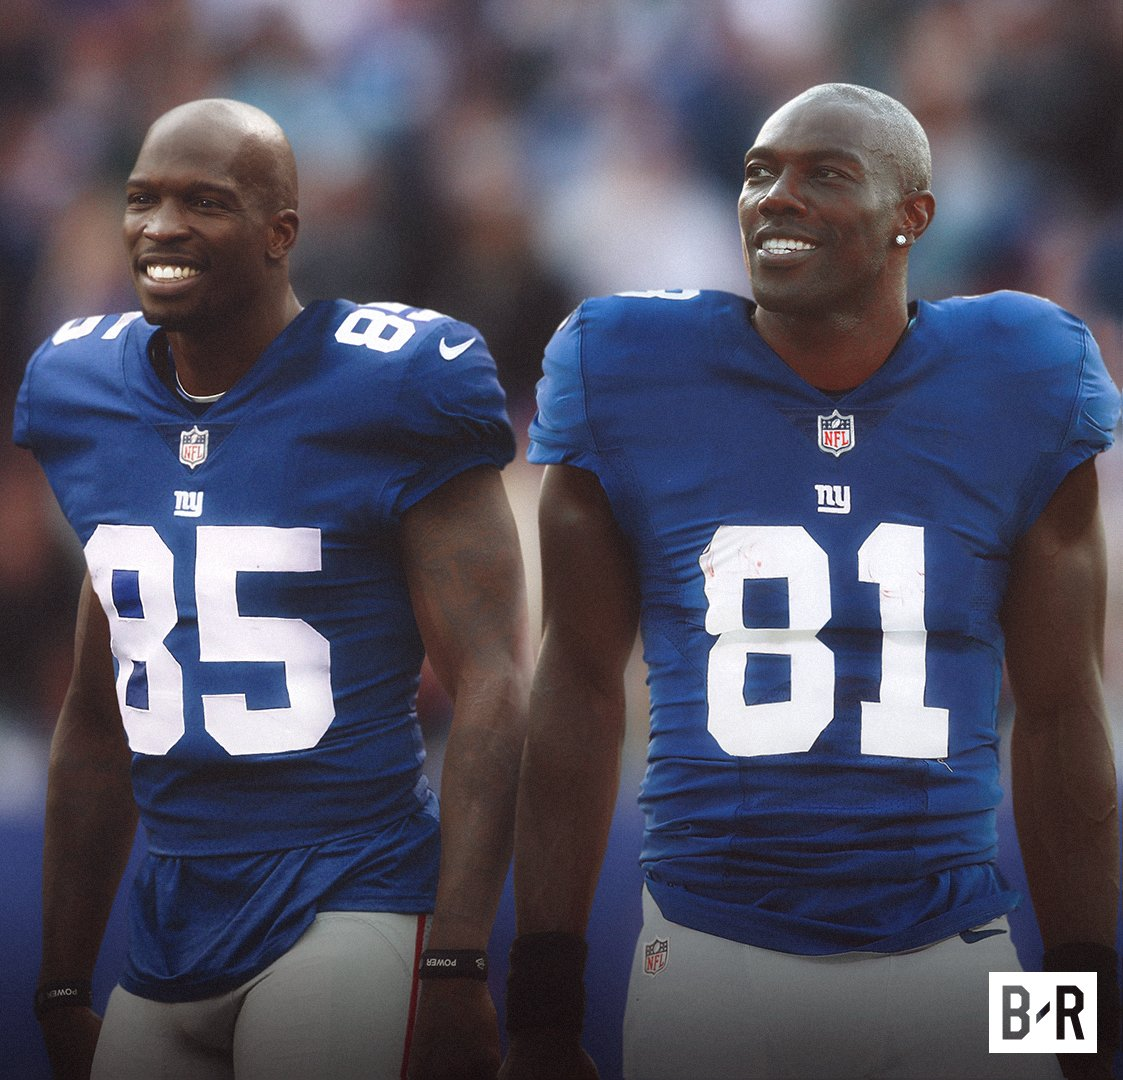 Ochocinco and T.O. reached out to the Giants on Twitter today after 4 WRs were injured 👀